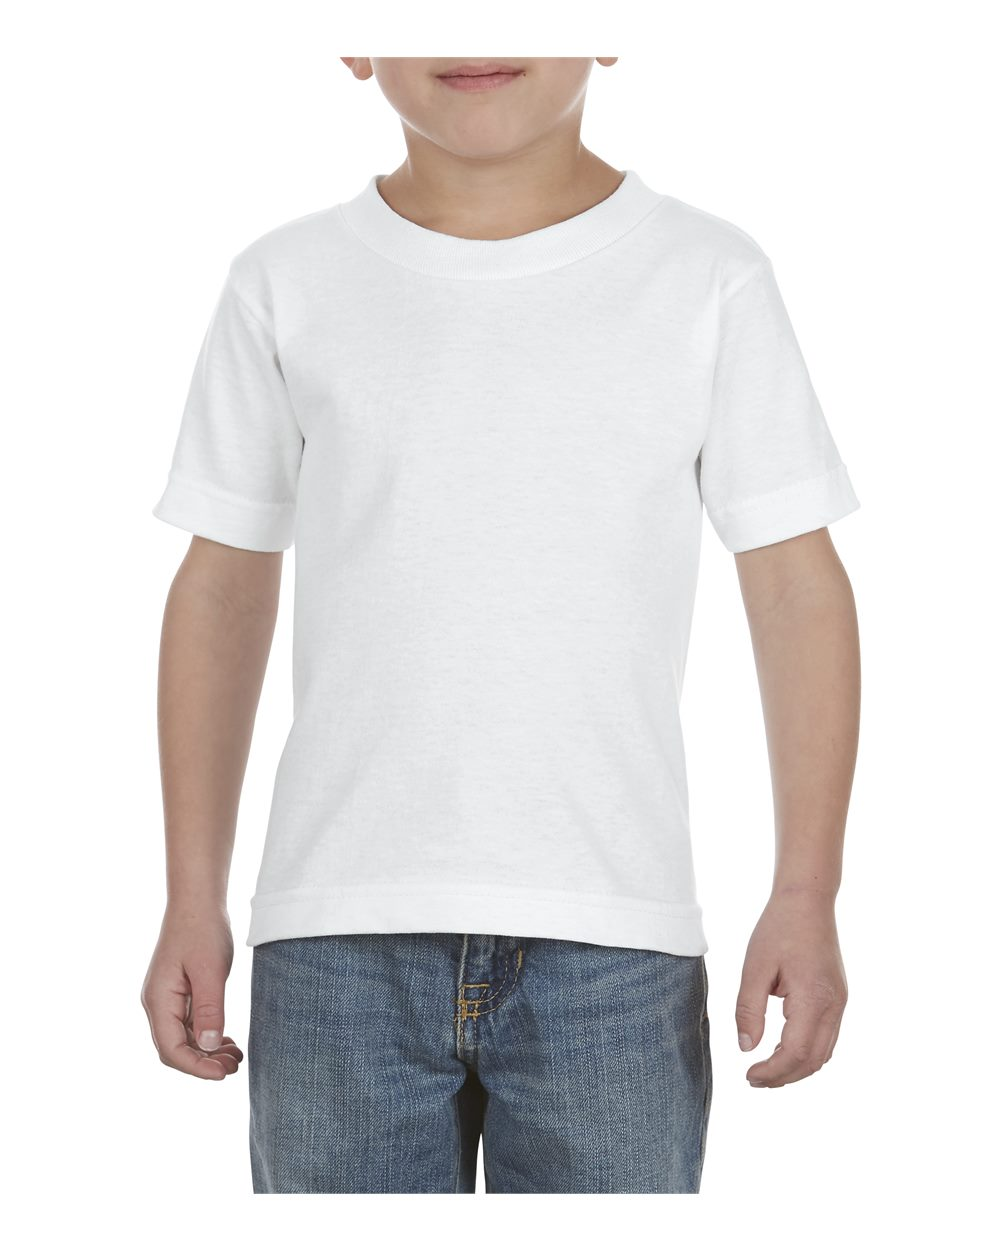 Alstyle 3380 - Classic Toddler Tee